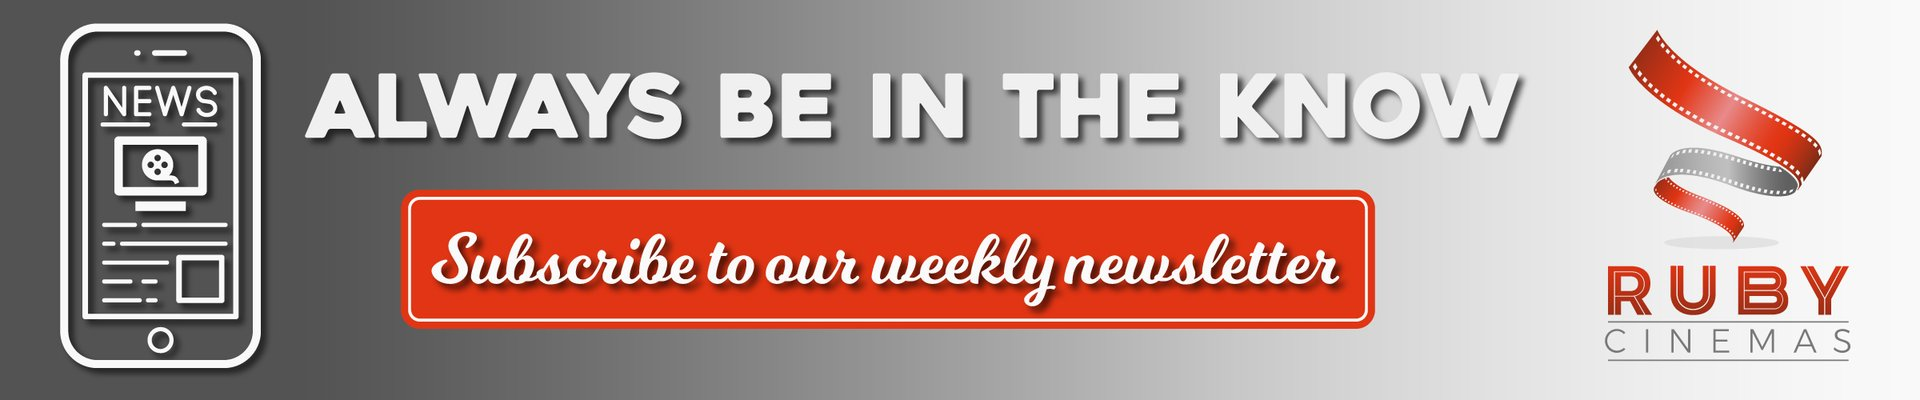 subscribe to our weekly newsletter